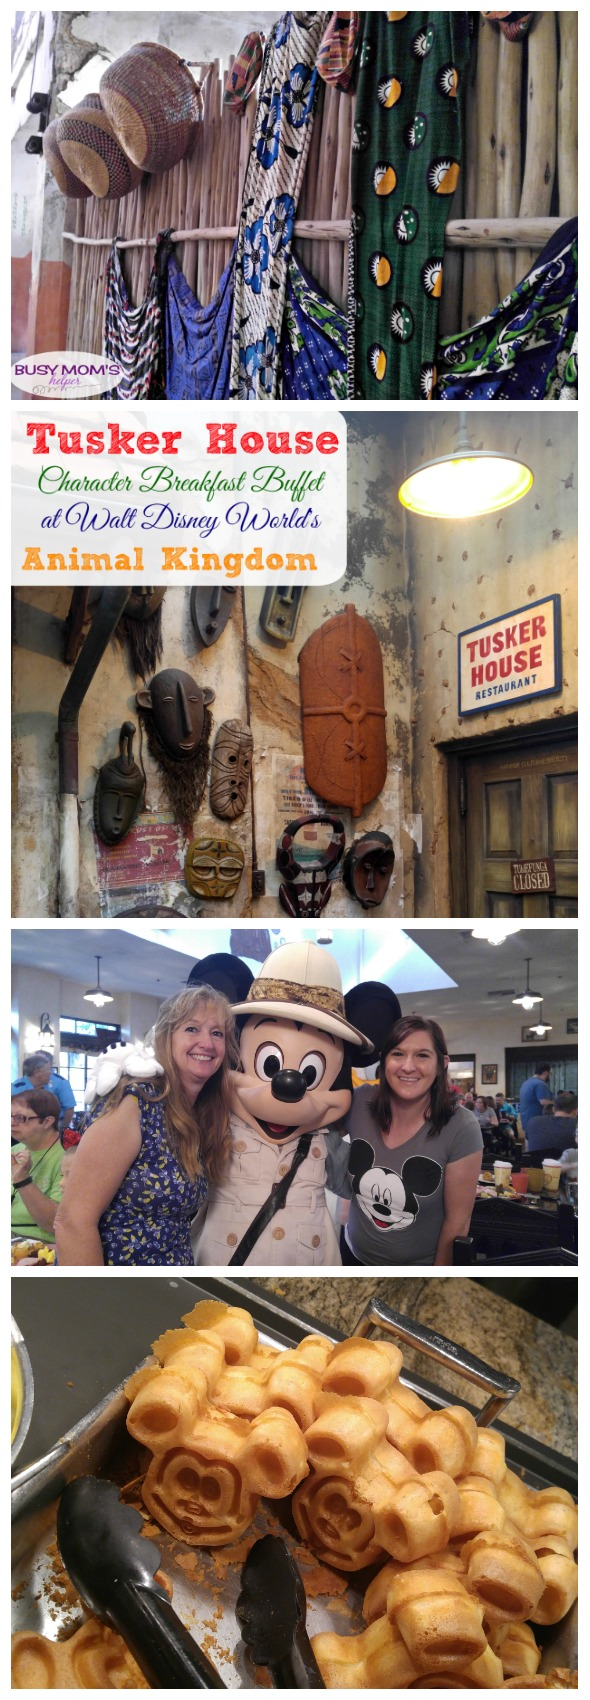 Tusker House Character Breakfast Buffet at Walt Disney World's Animal Kingdom